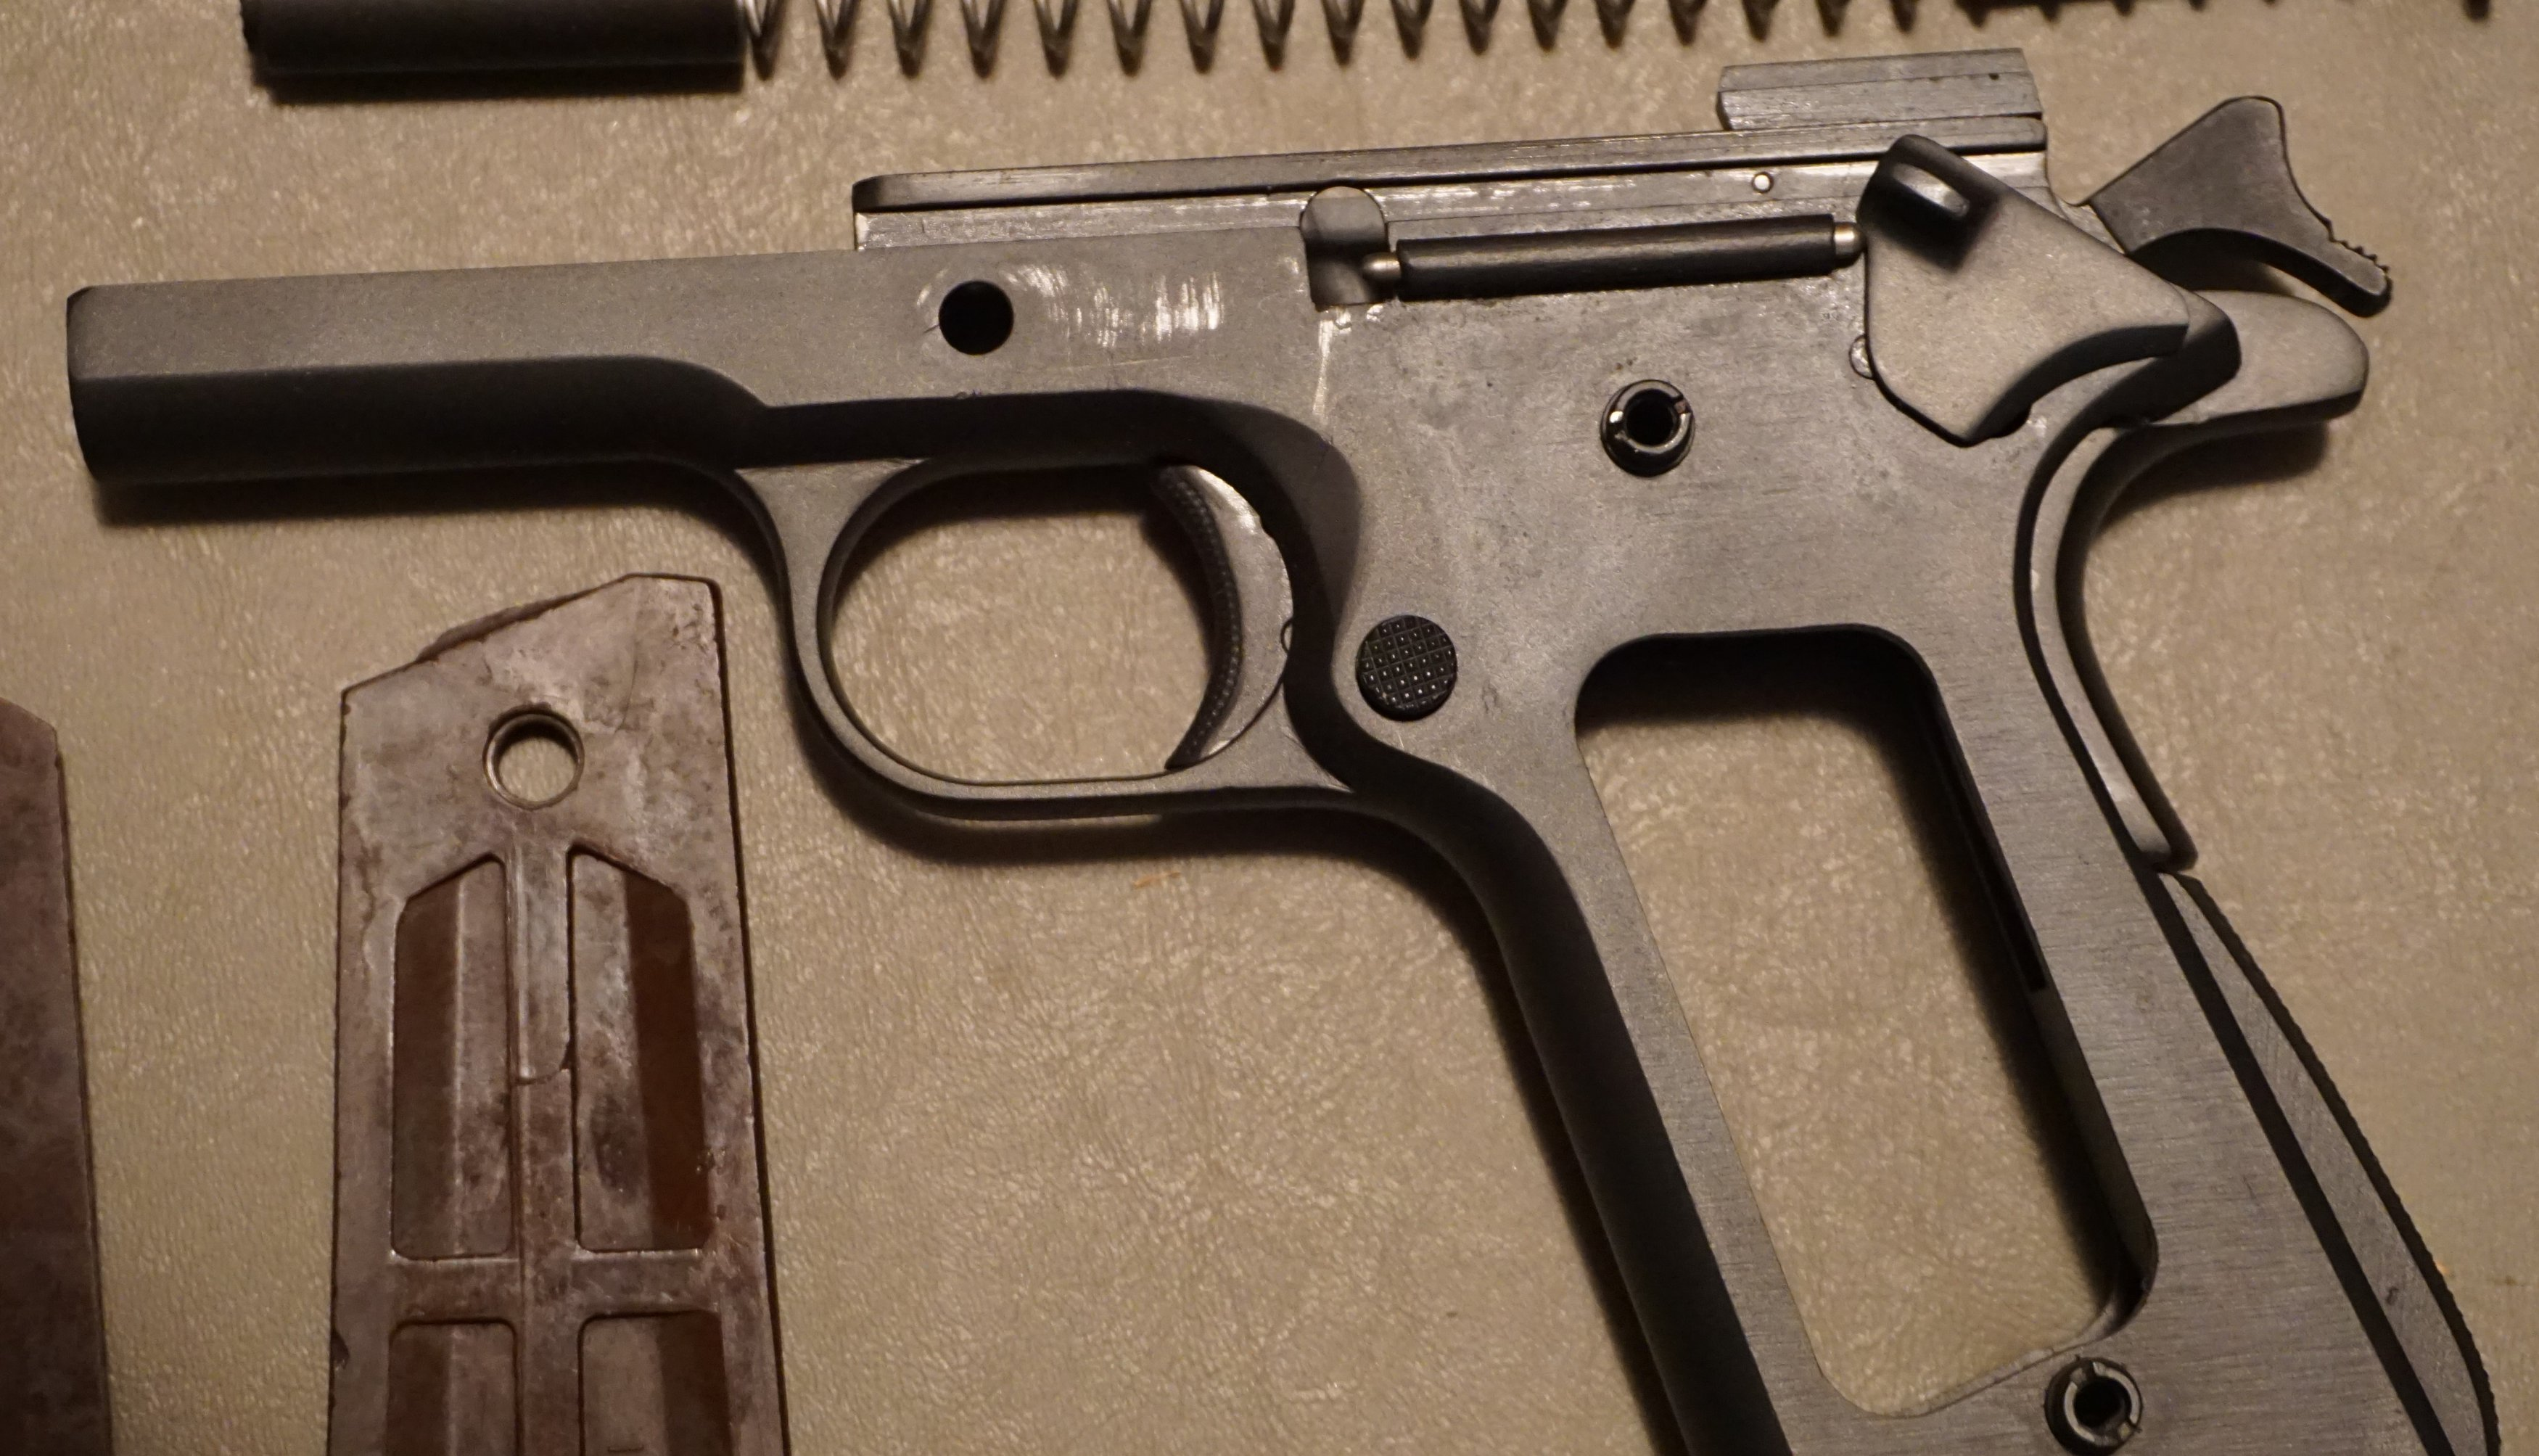 Thoughts on this 1911 - Additional pic added